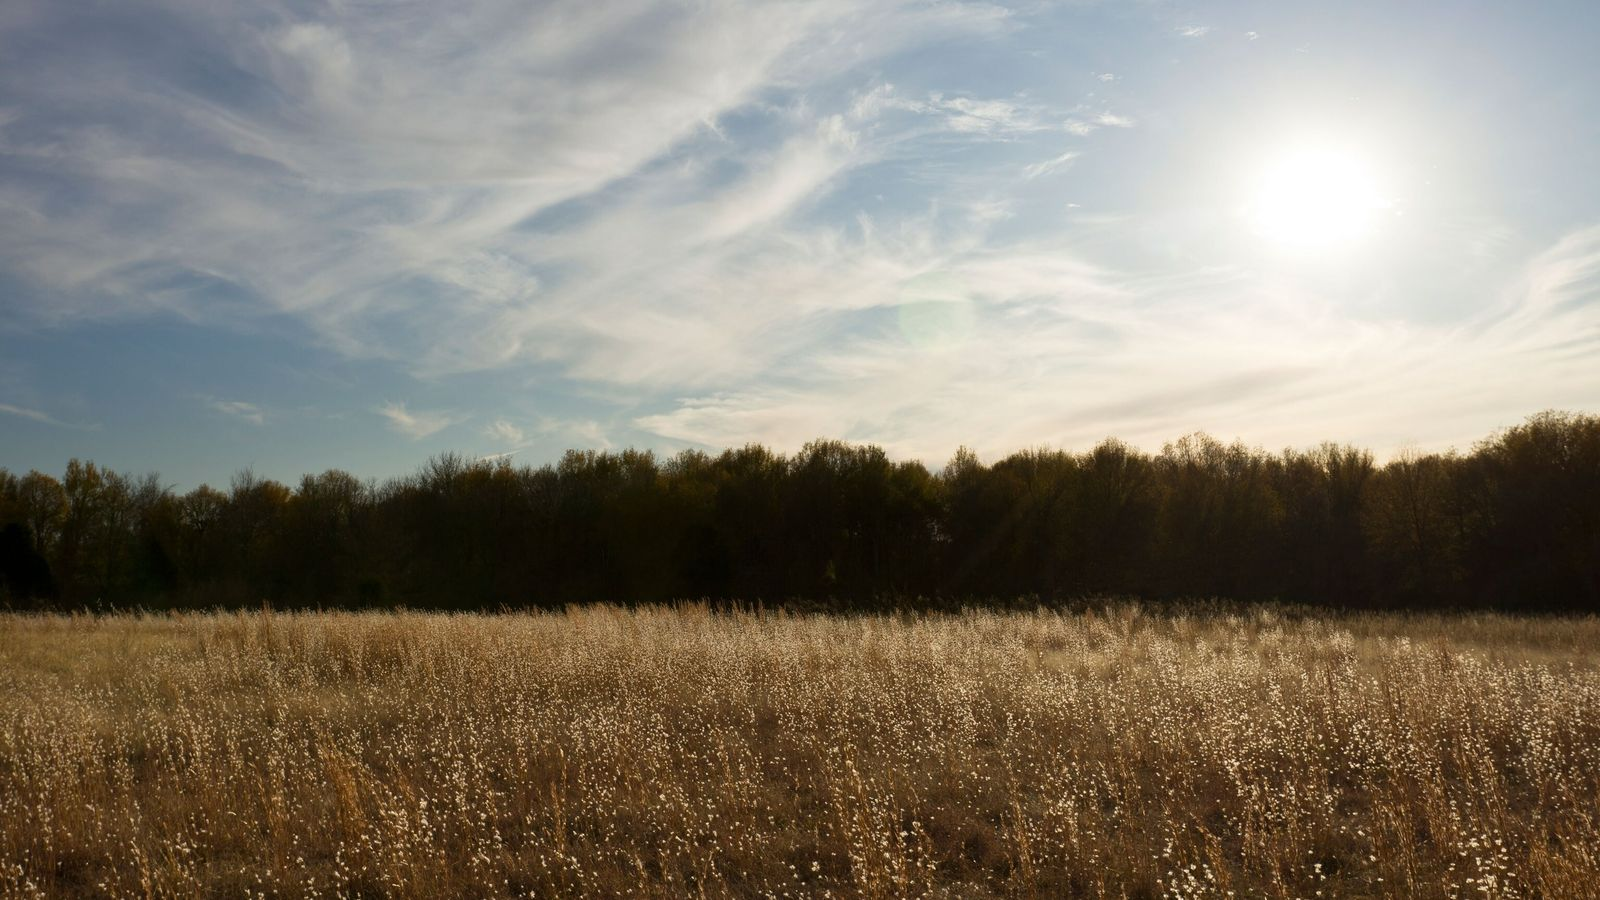 Hazy sun over field of wild grass and cloudy blue at Spiro Mounds Archeological Site in ...